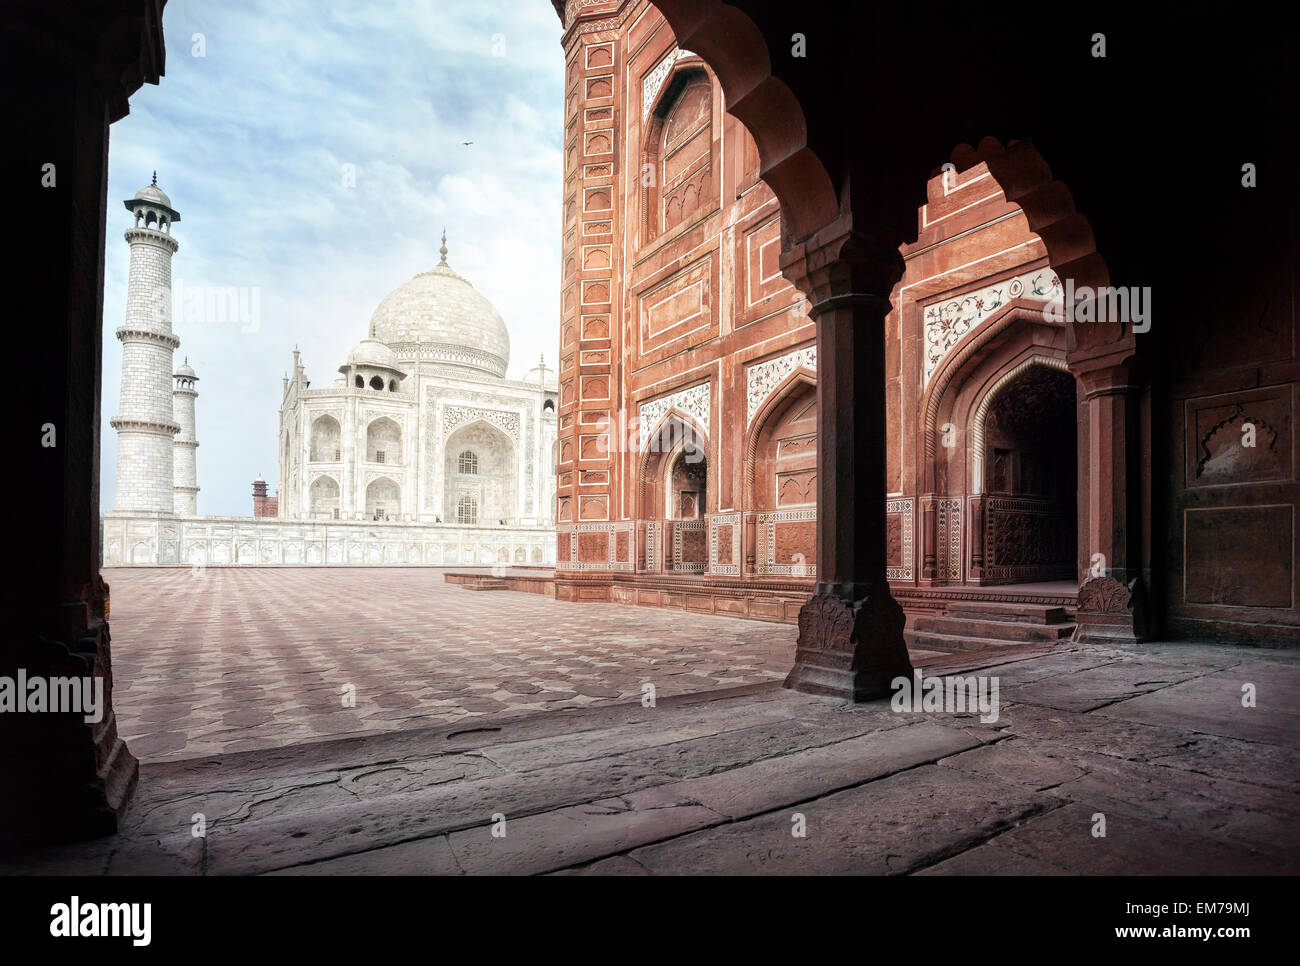 Taj Mahal tomb and mosque in the arch at blue sky in Agra, Uttar Pradesh, India - Stock Image